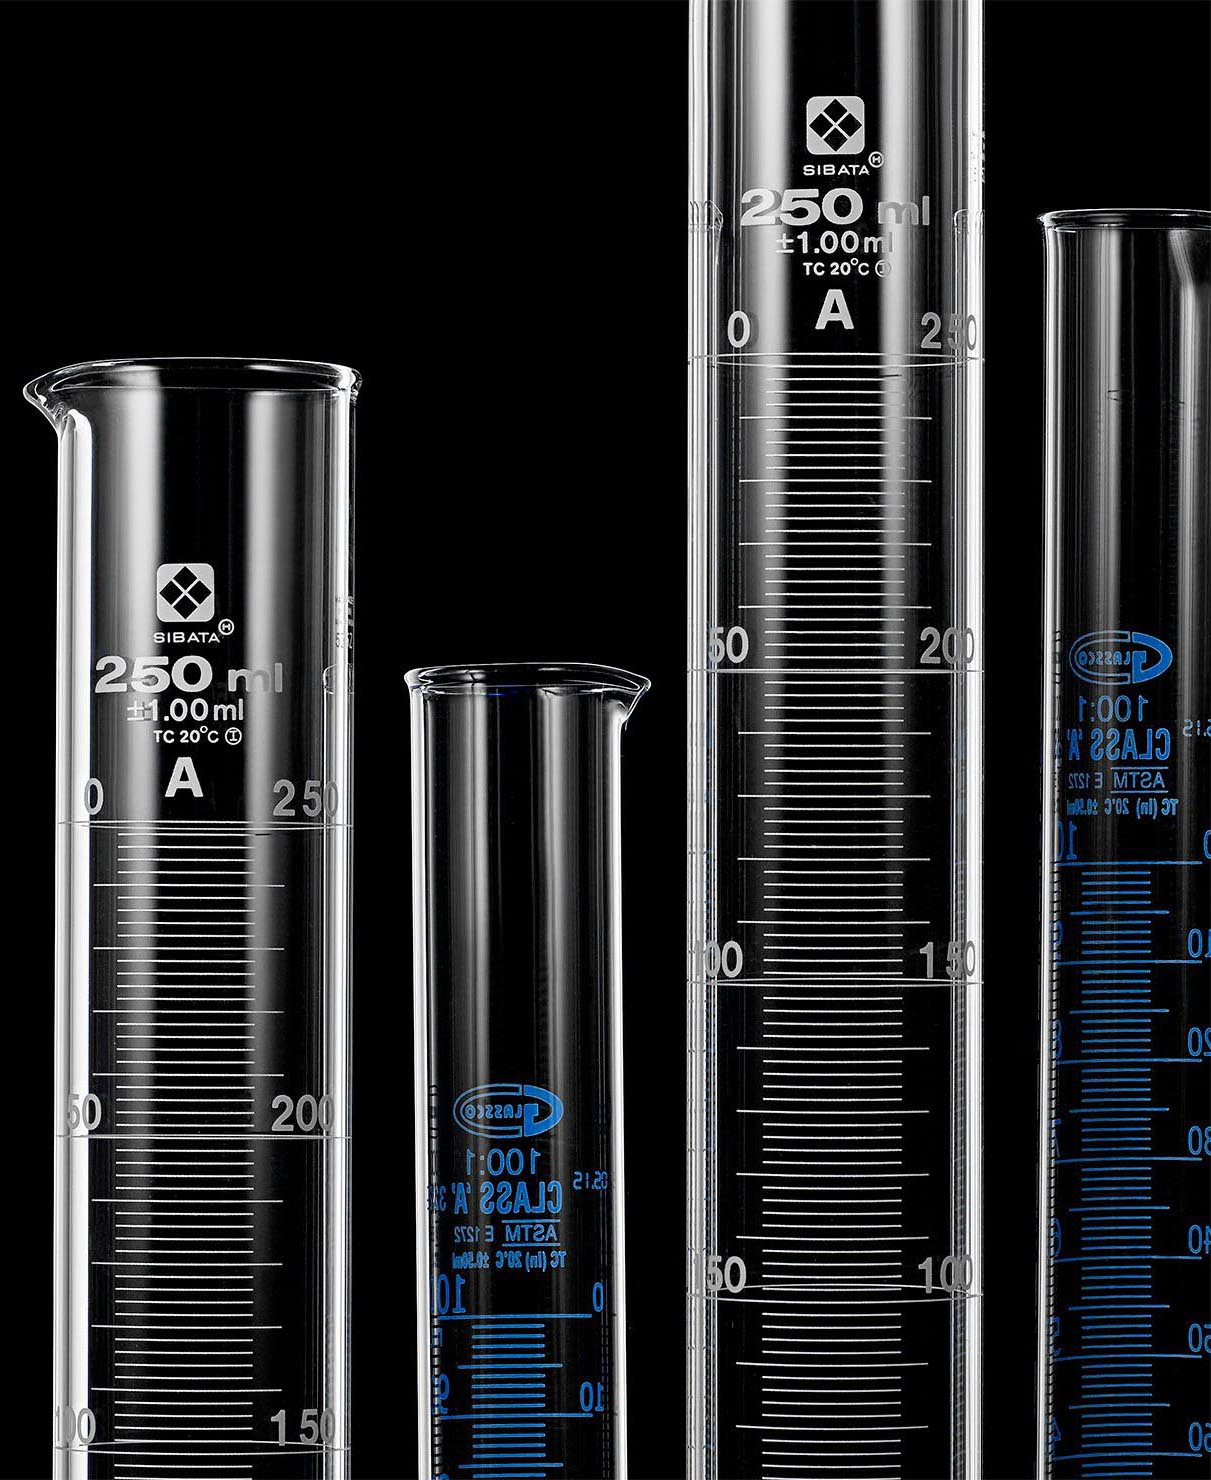 Four graduated cylinders of various sizes on a black background.